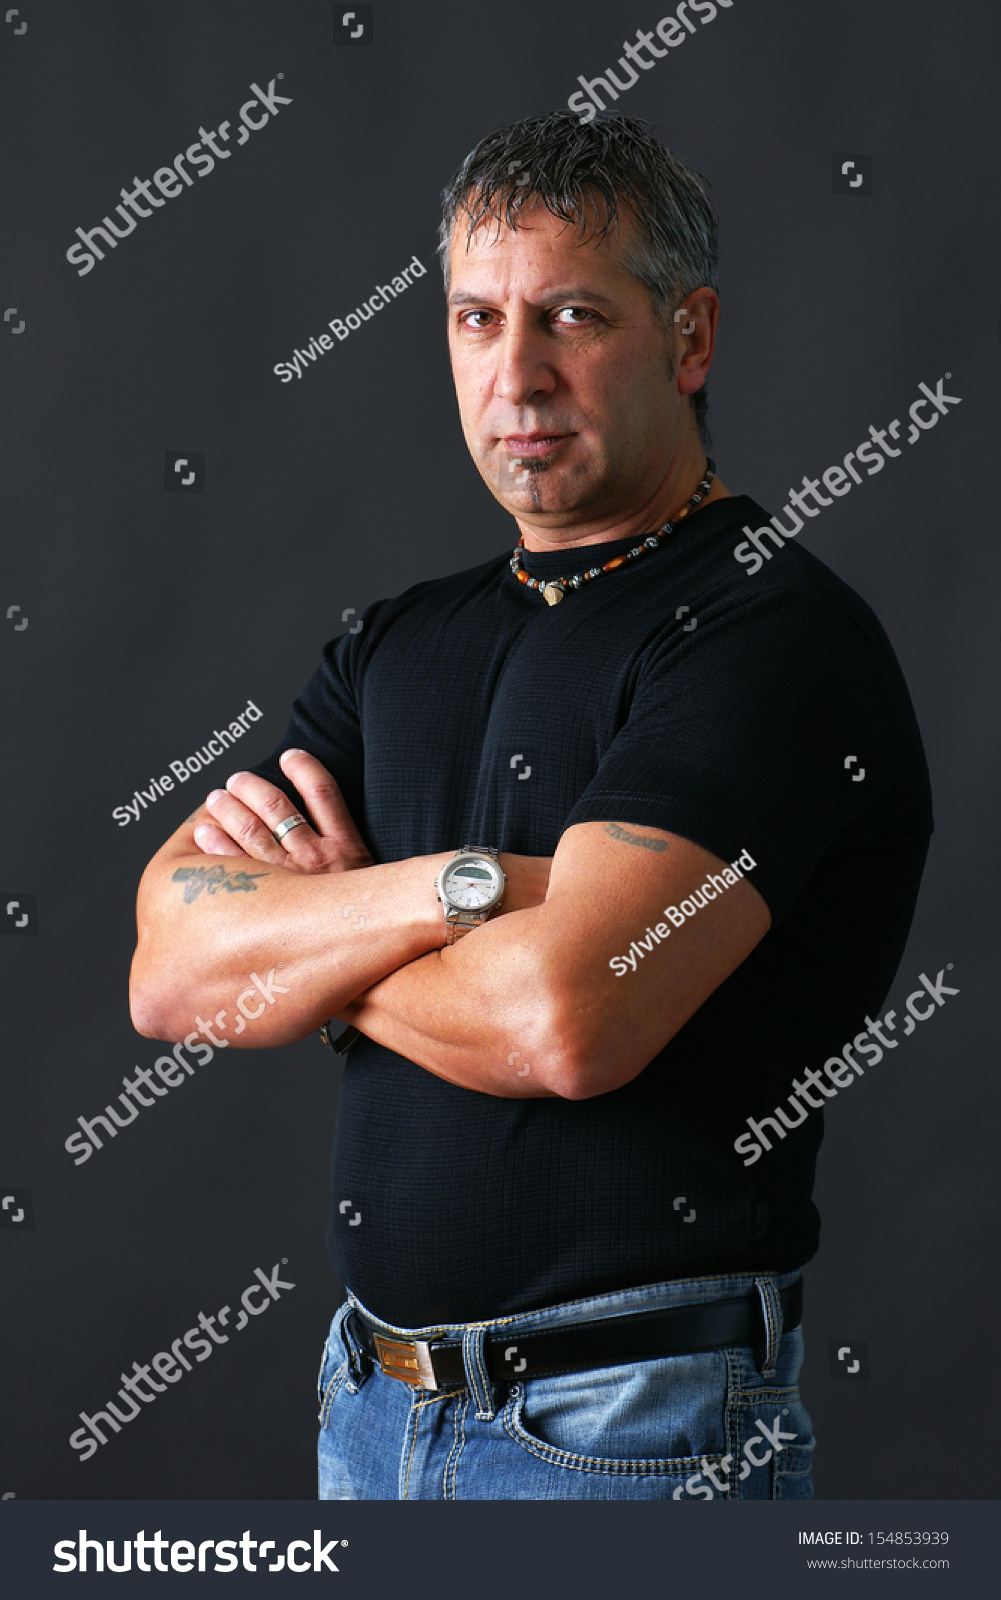 15 Year Boys Bedroom: Serious Or Angry Tough Guy Looking At Camera Stock Photo